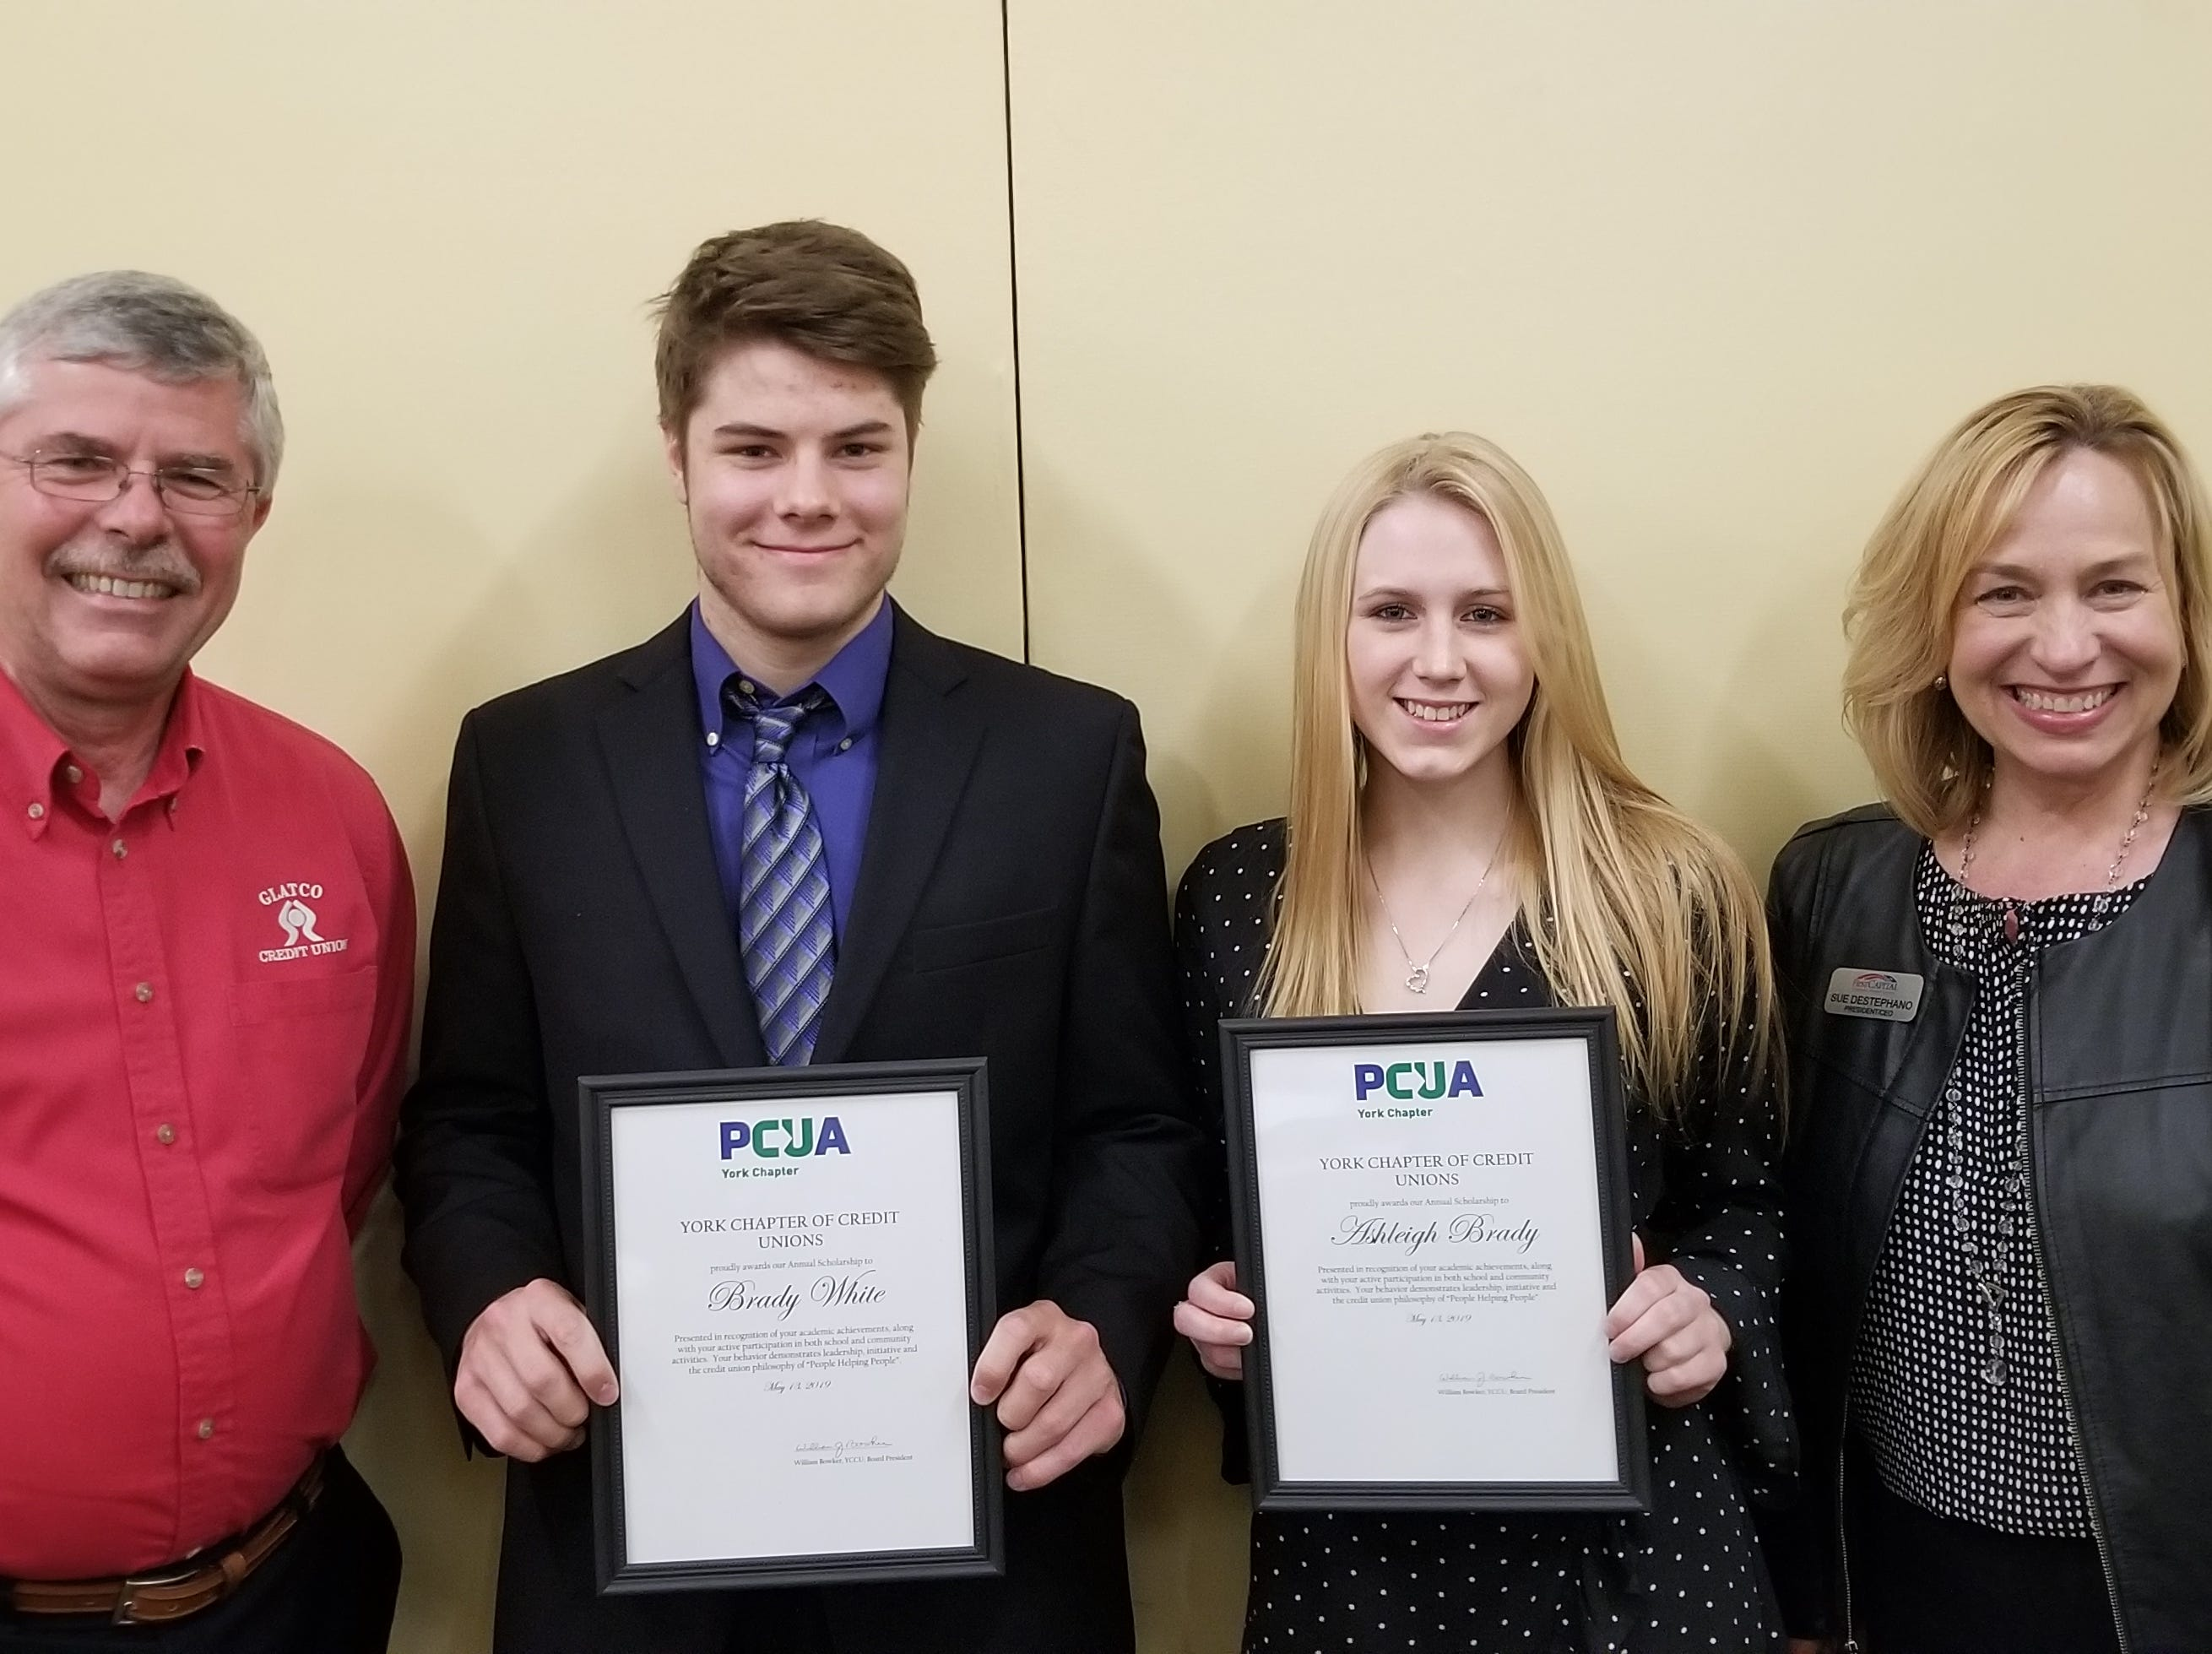 On Monday, May 13, 2019, the York Chapter of Credit Unions announced the winners of its 2019 scholarship contest; Brady White and Ashleigh Brady.  Both received $1,000 to go towards their first year of schooling. Pictured, from left, are Bill Bowker, President/CEO Glatco Credit Union & Chapter President; Brady White, West York Area High School senior; Ashleigh Brady, Dallastown Area High School senior, and Sue DeStephano, President/CEO, First Capital Federal Credit Union. submitted